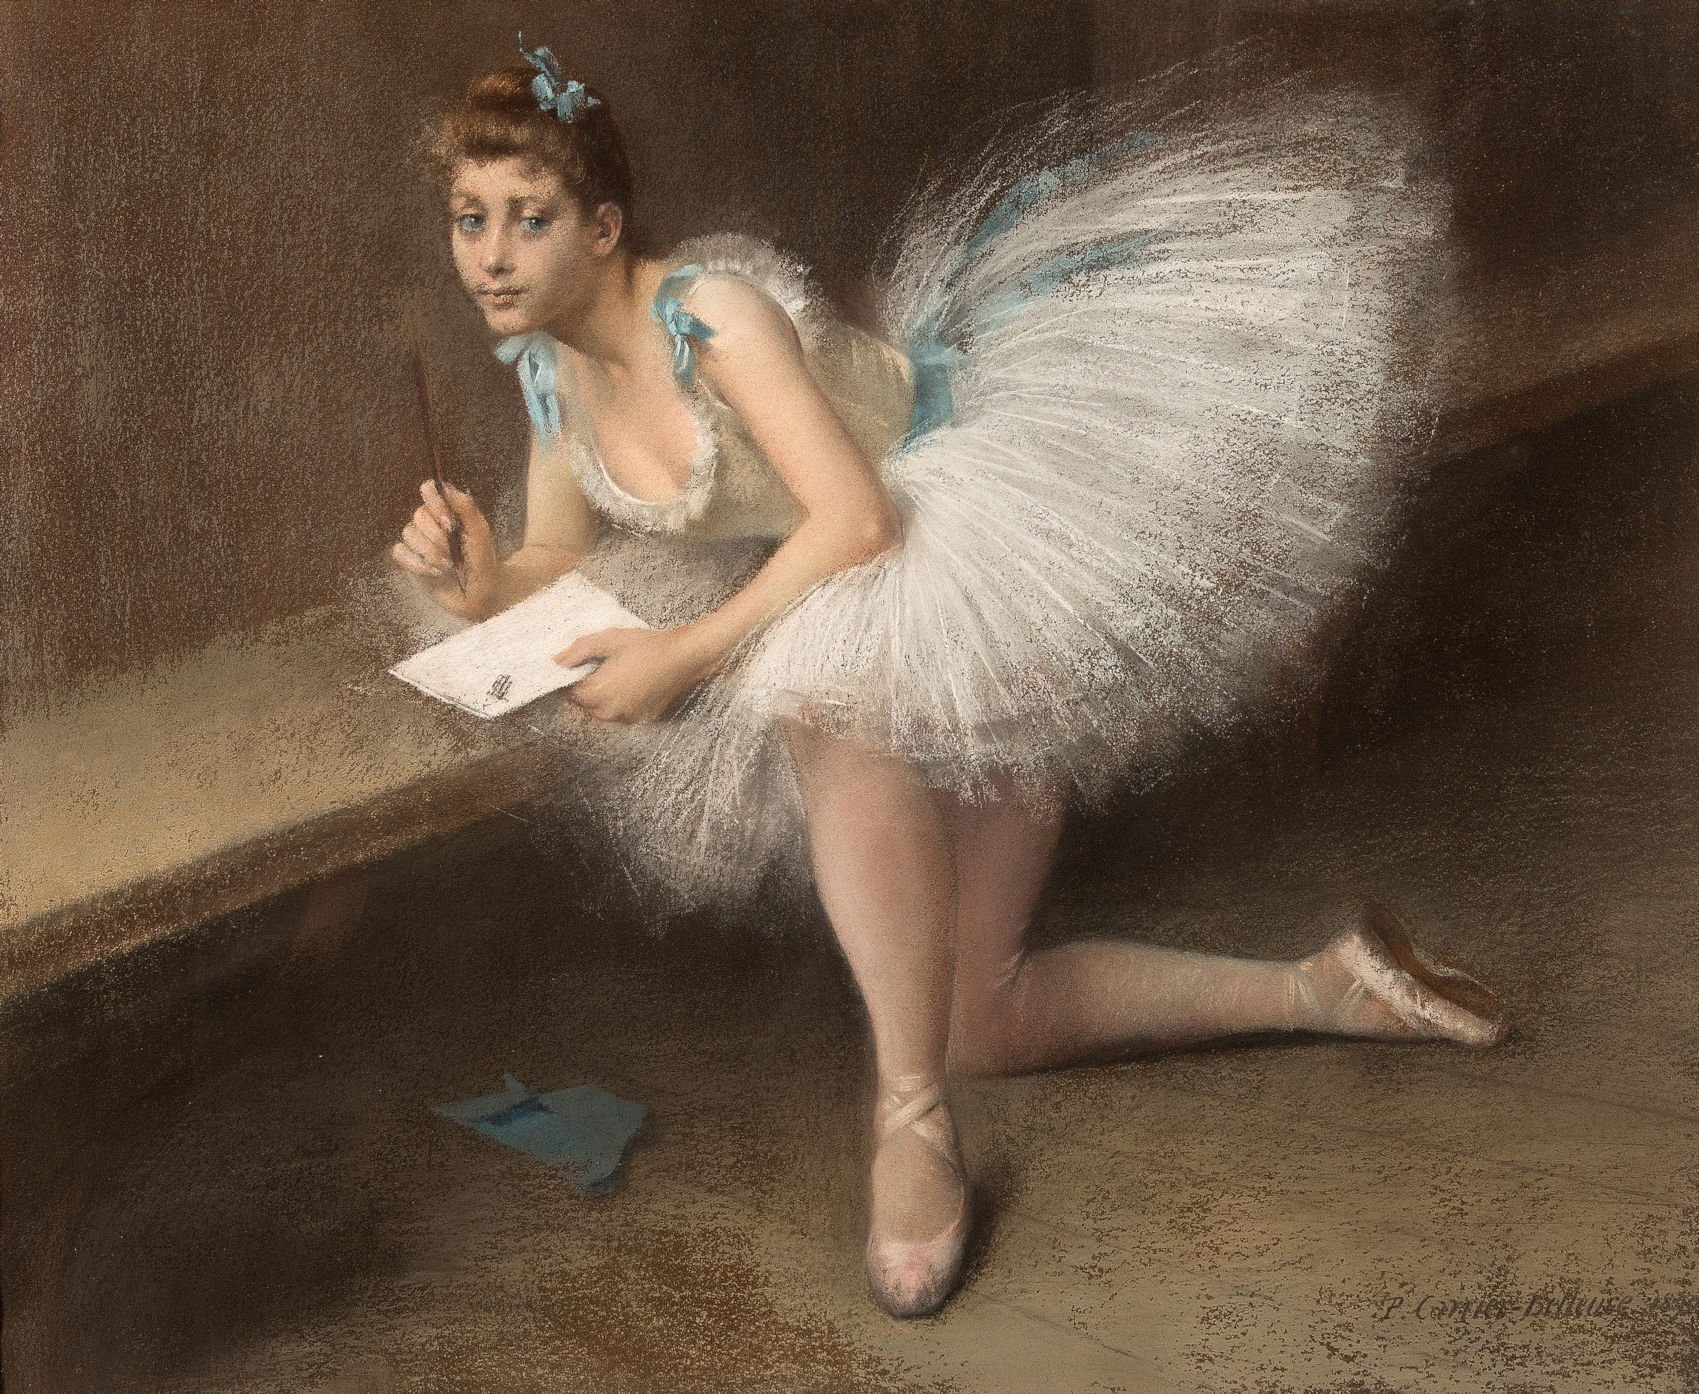 Carrier-Belleuse dancer